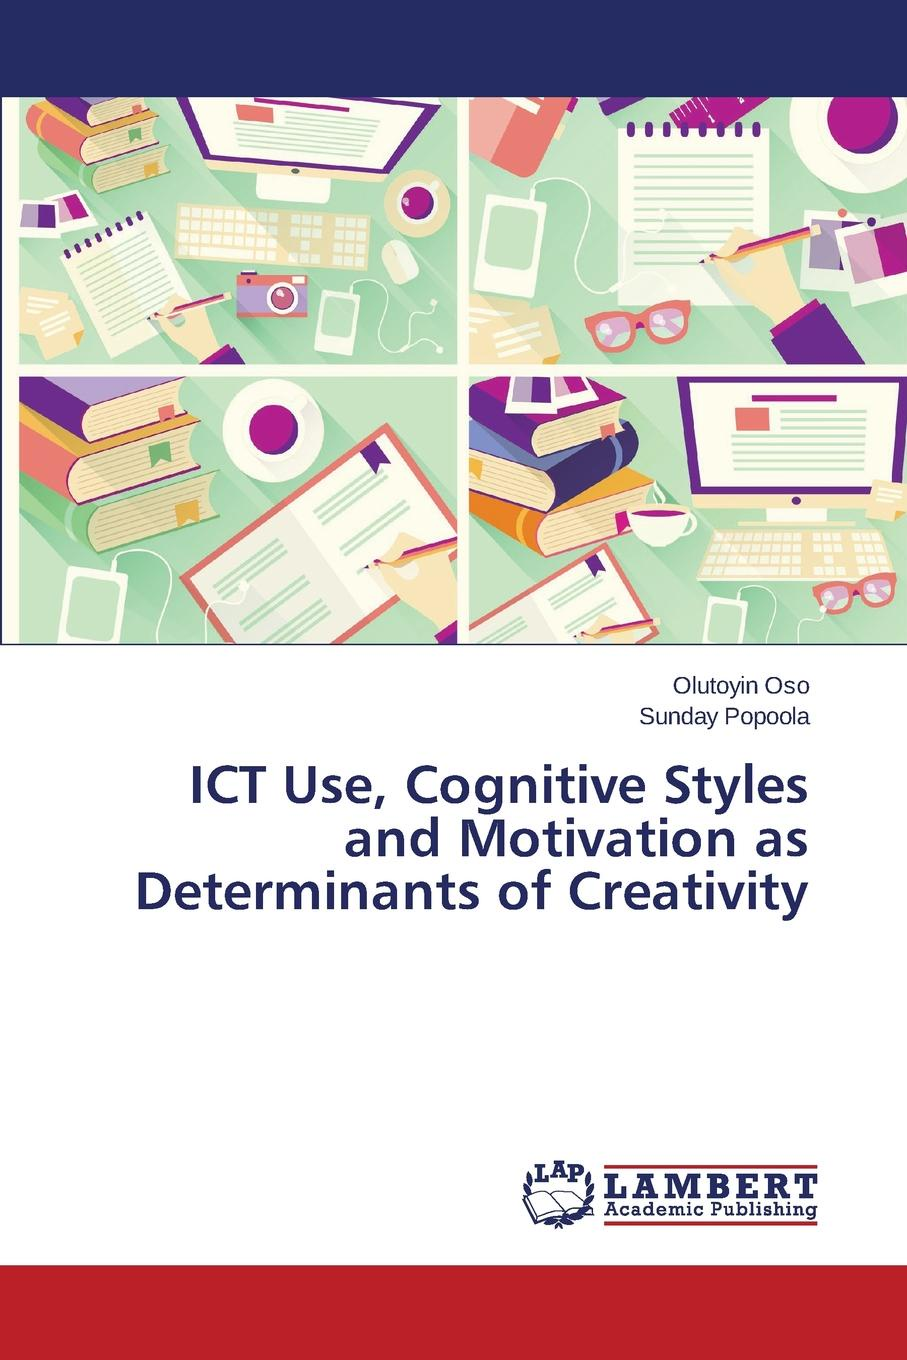 Oso Olutoyin, Popoola Sunday ICT Use, Cognitive Styles and Motivation as Determinants of Creativity muhammad naeem intrinsic versus extrinsic motivation and the effects of those types on employees